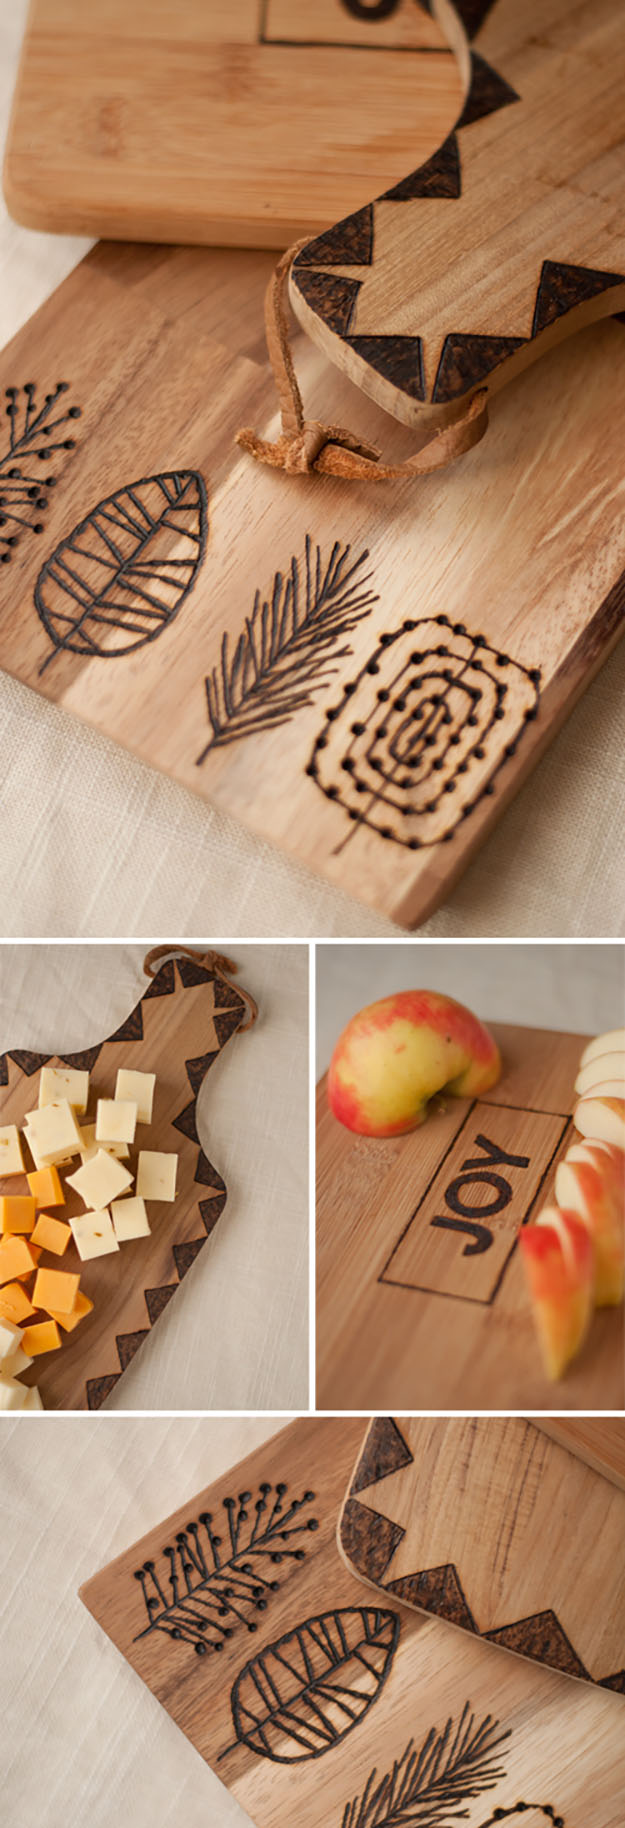 DIY Gifts for Friends & Family   DIY Kitchen Ideas   Etched Wooden Cutting Boards   DIY Projects & Crafts by DIY JOY   Top Selling Things to Make And Sell On Etsy